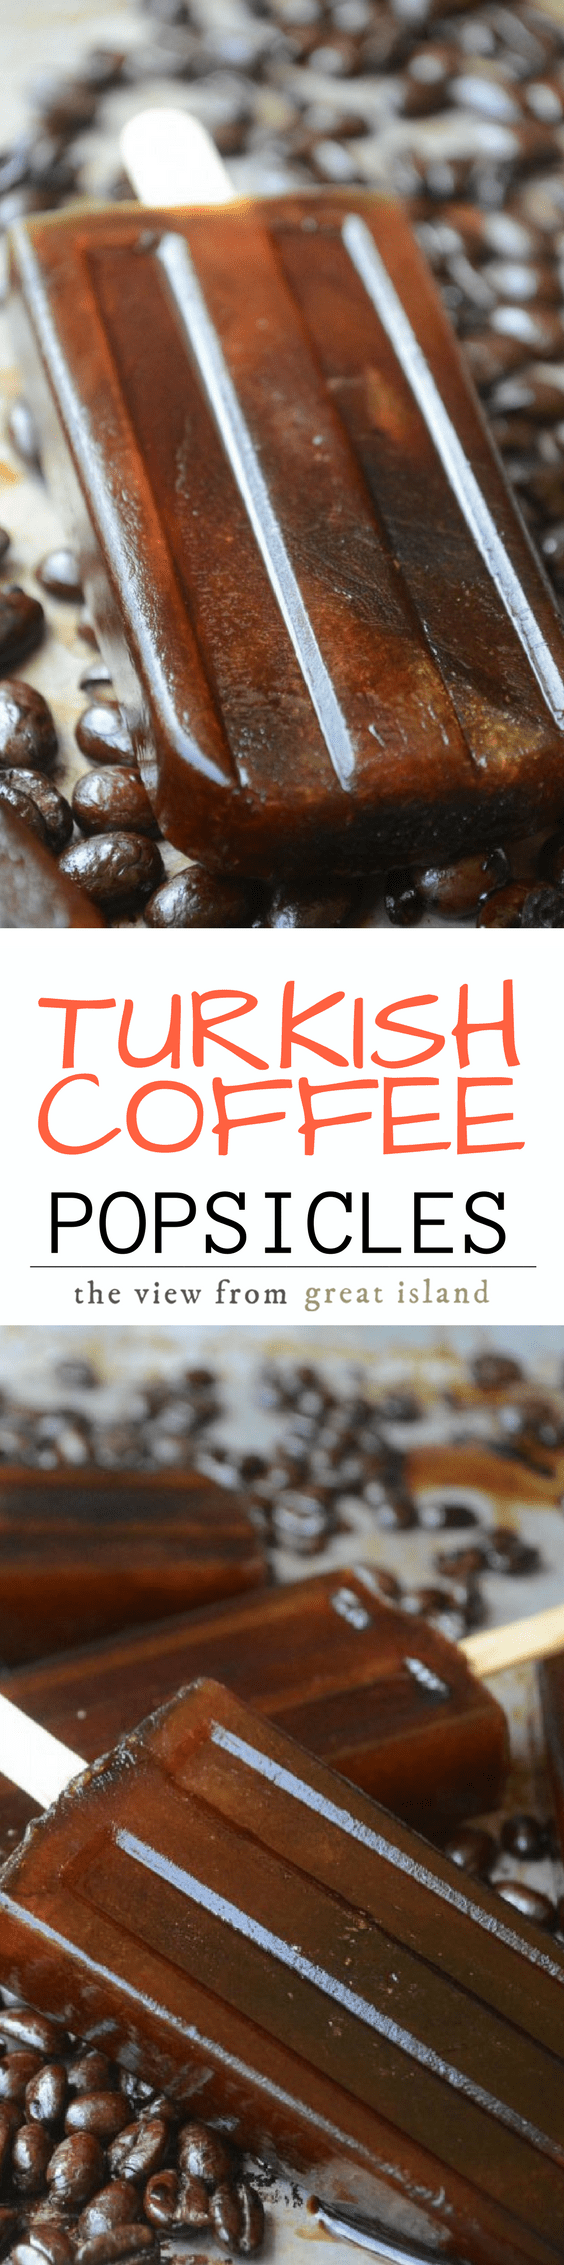 TURKISH COFFEE POPSICLES pin